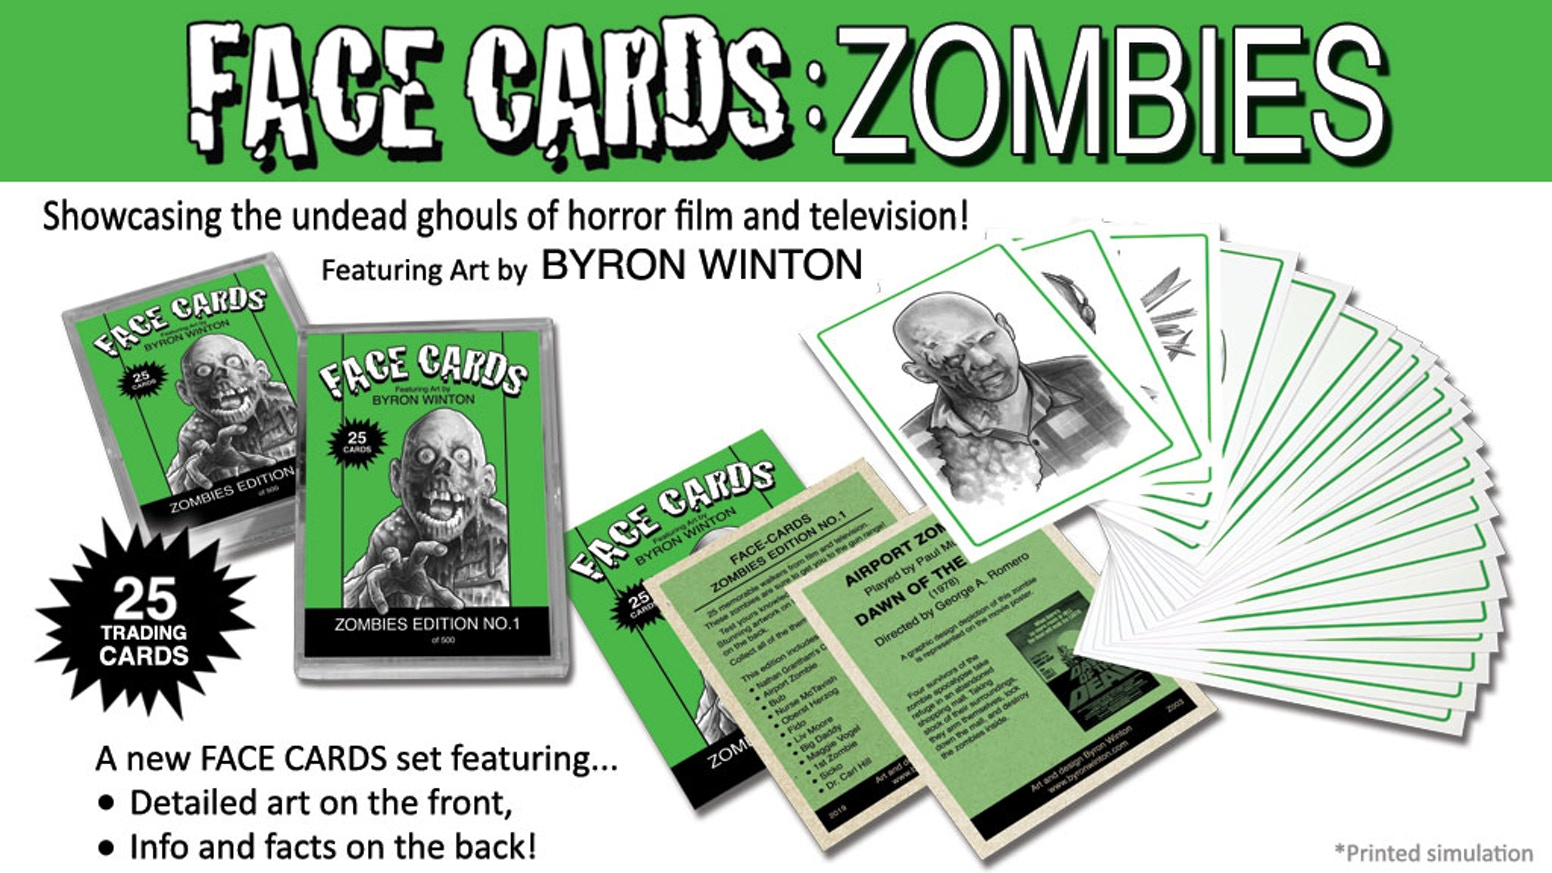 25 Trading Card Set. Artistic renditions of the undead ghouls from horror film and television!